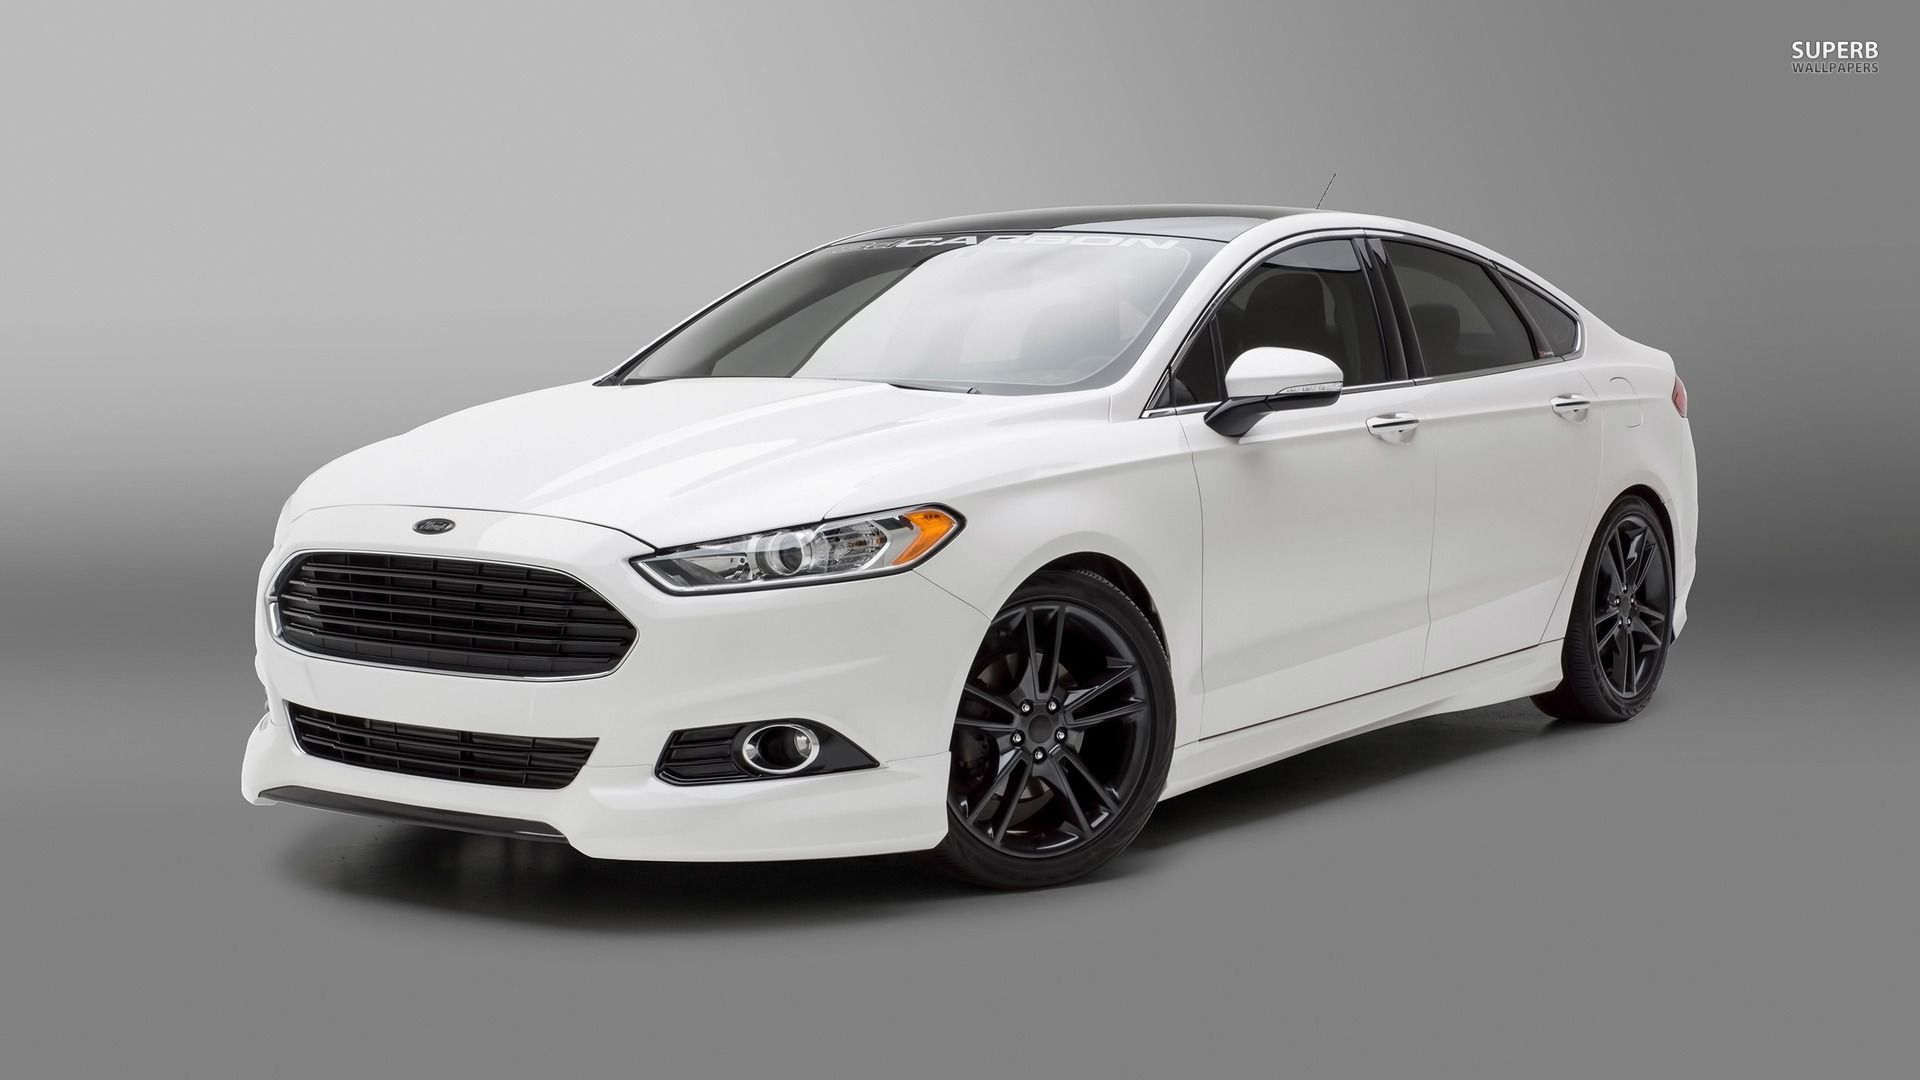 2015 ford fusion hd wallpaper http wallsauto com 2015